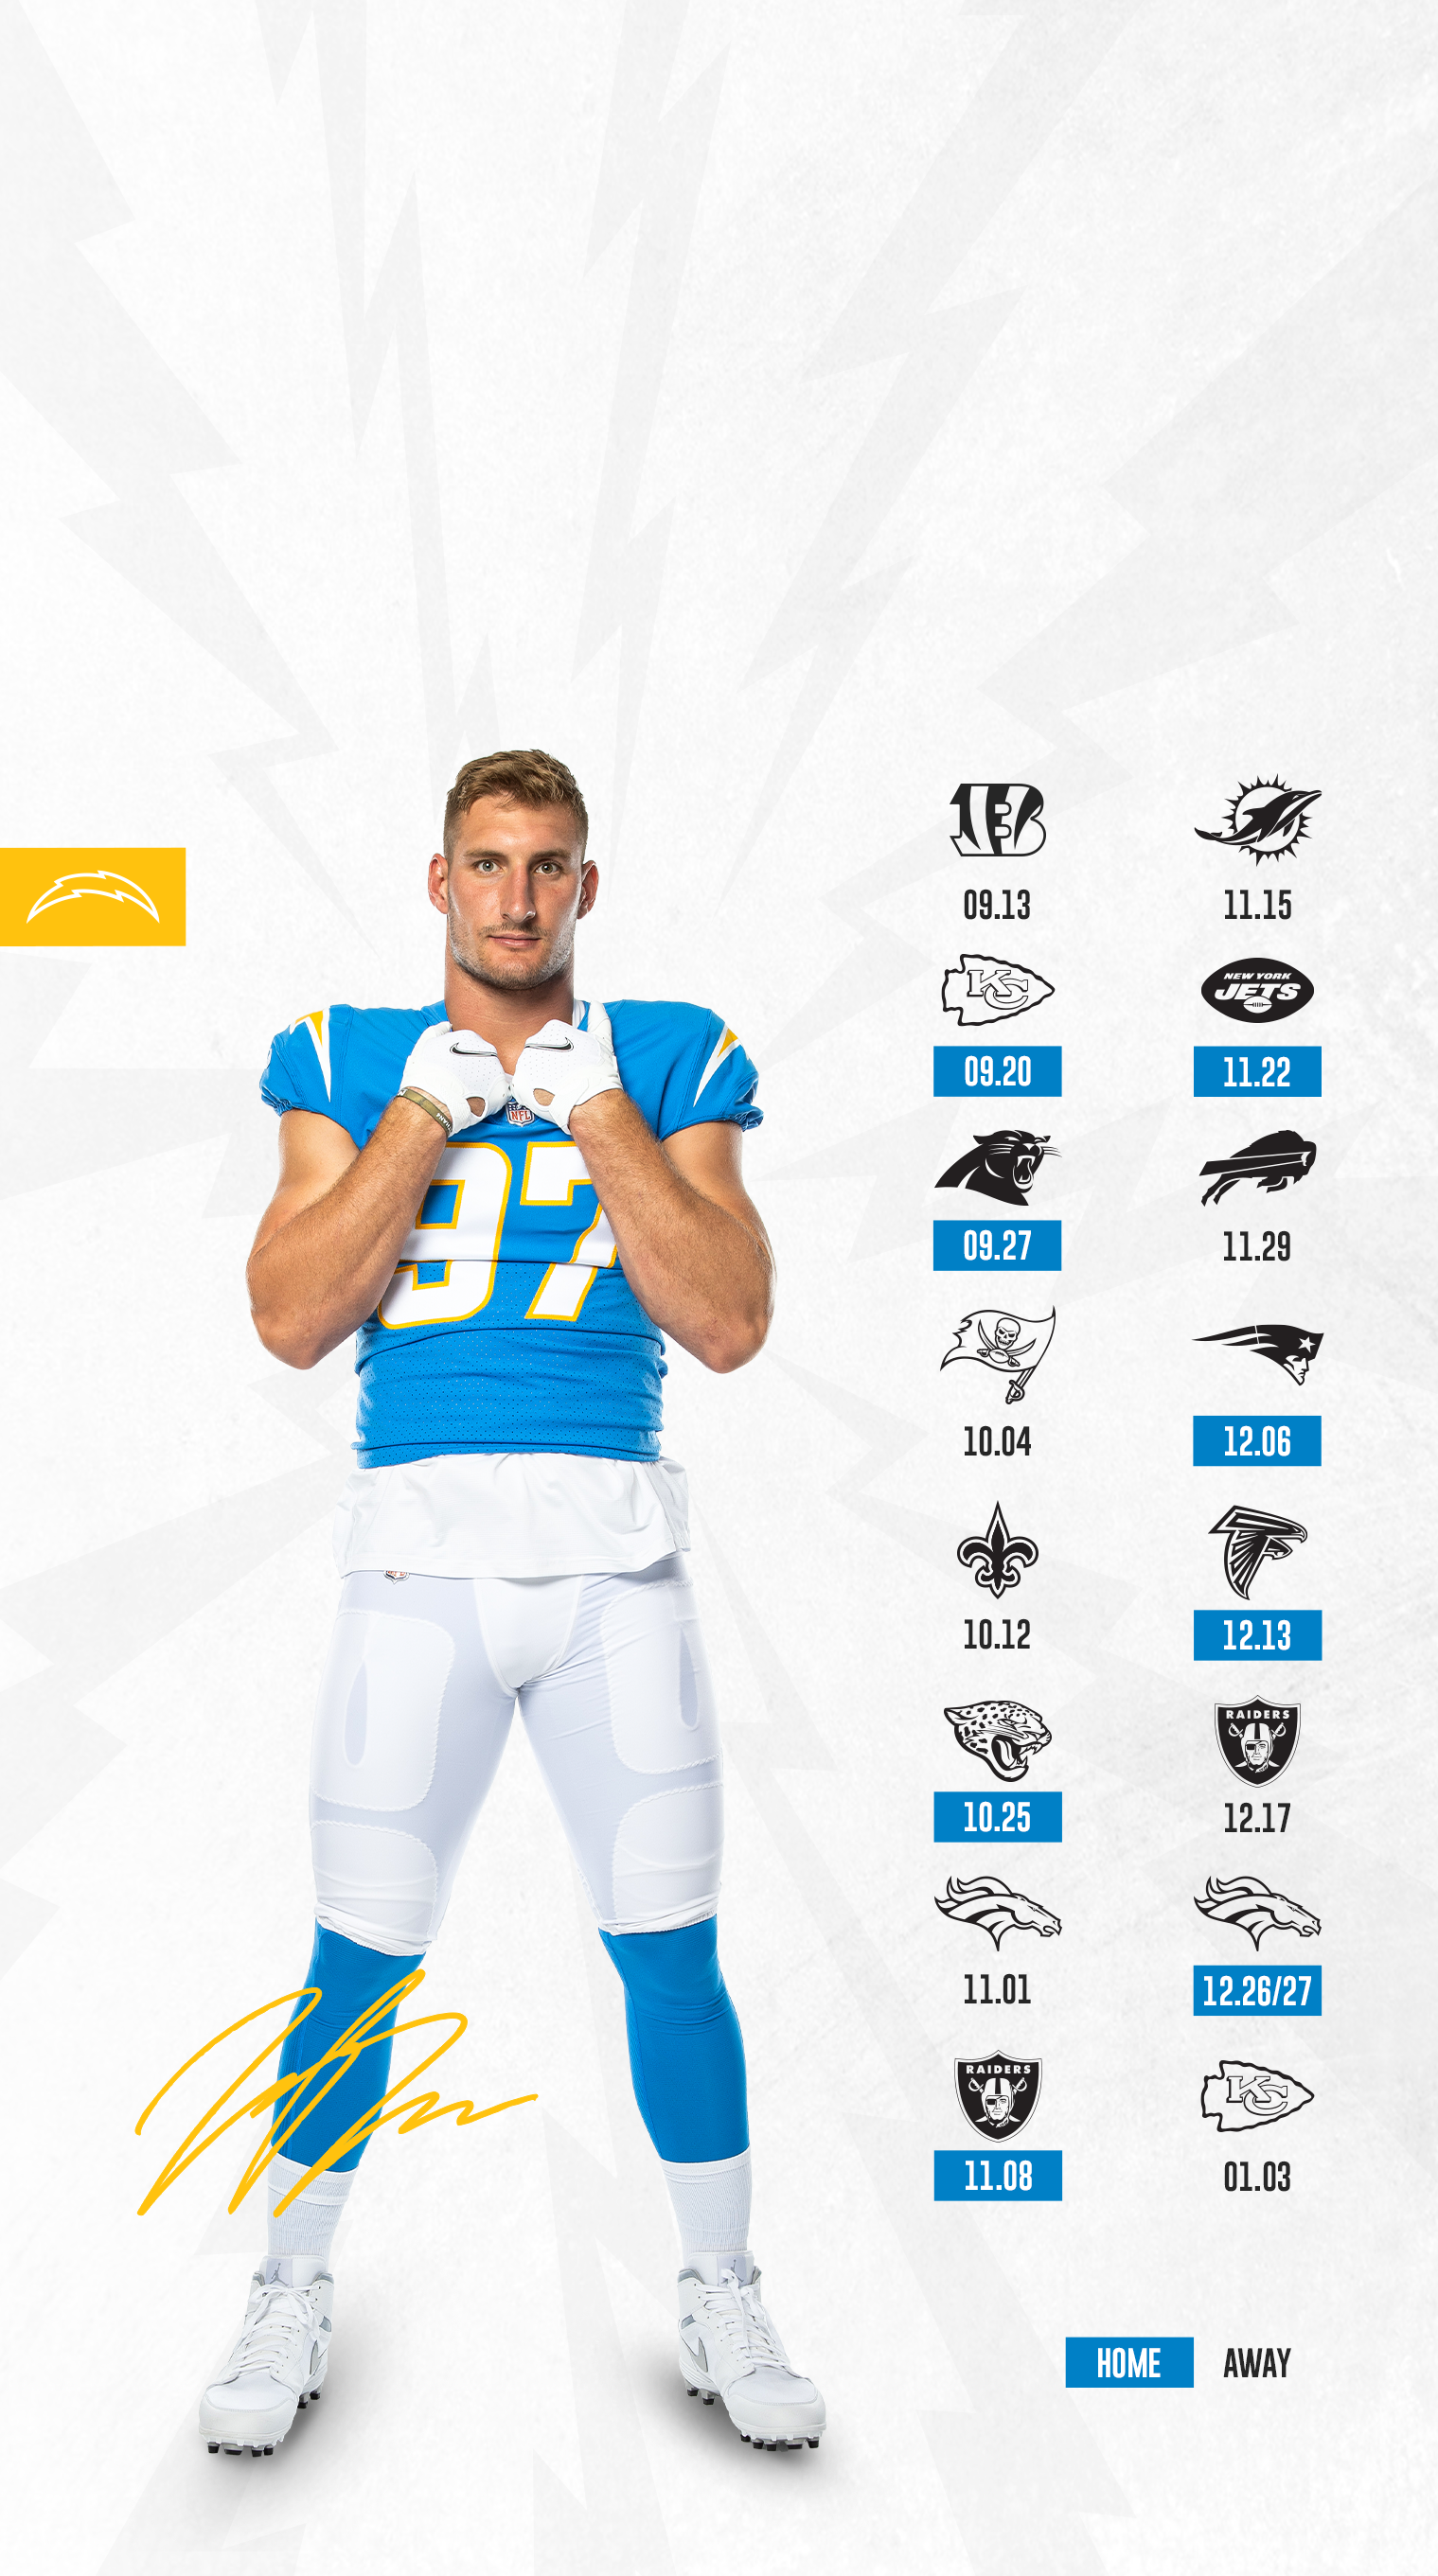 101420_Wallpaper_Schedule-J_BOSA